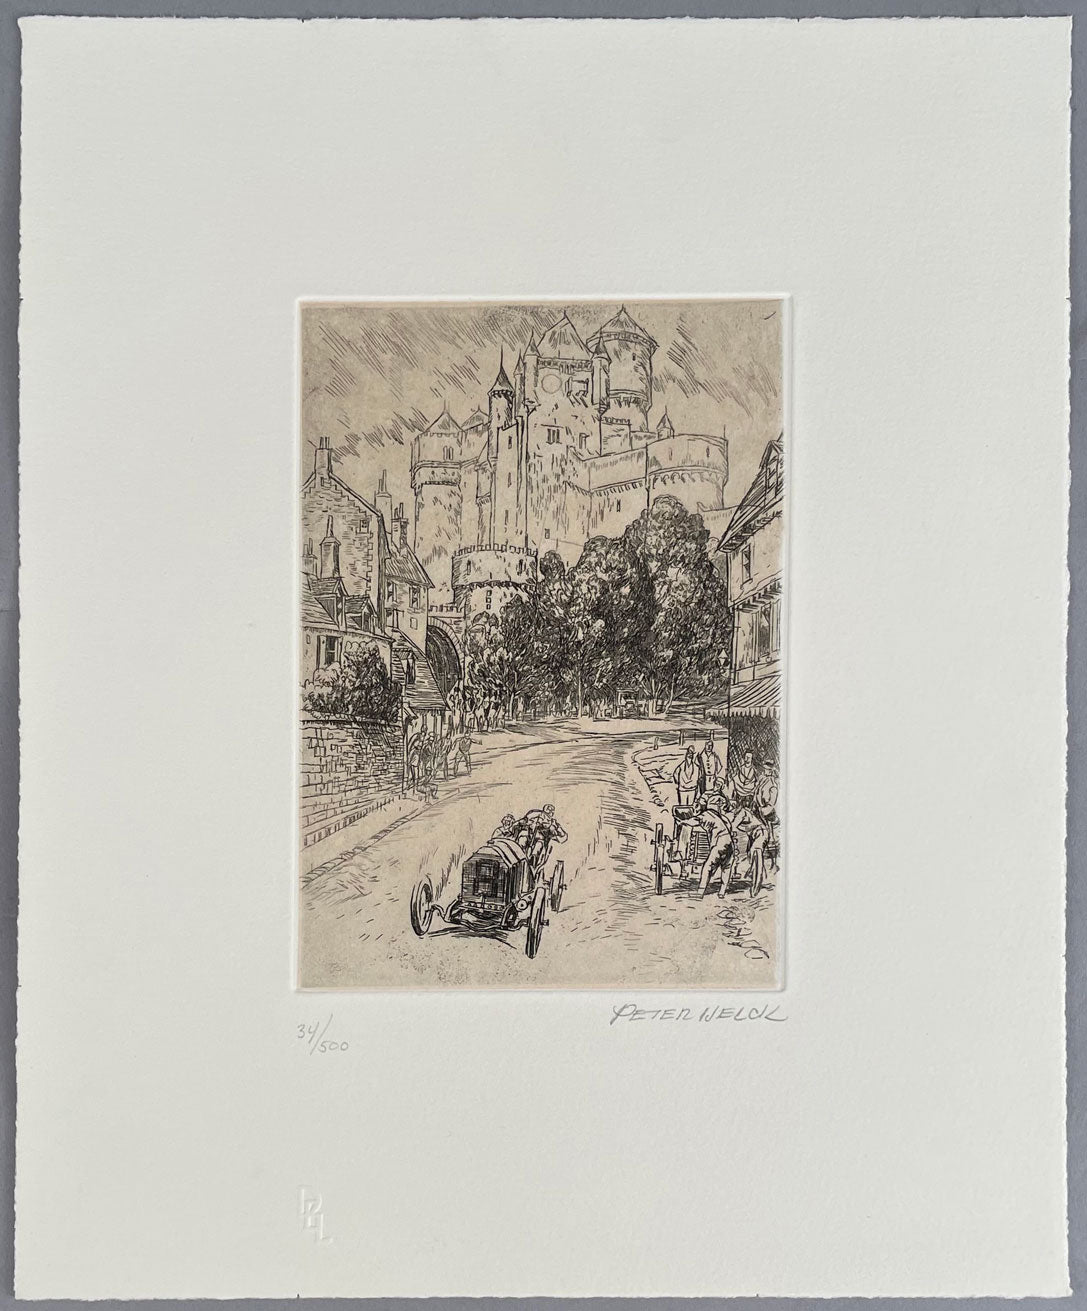 Passing through a Medieval French Town etching by Peter Helck